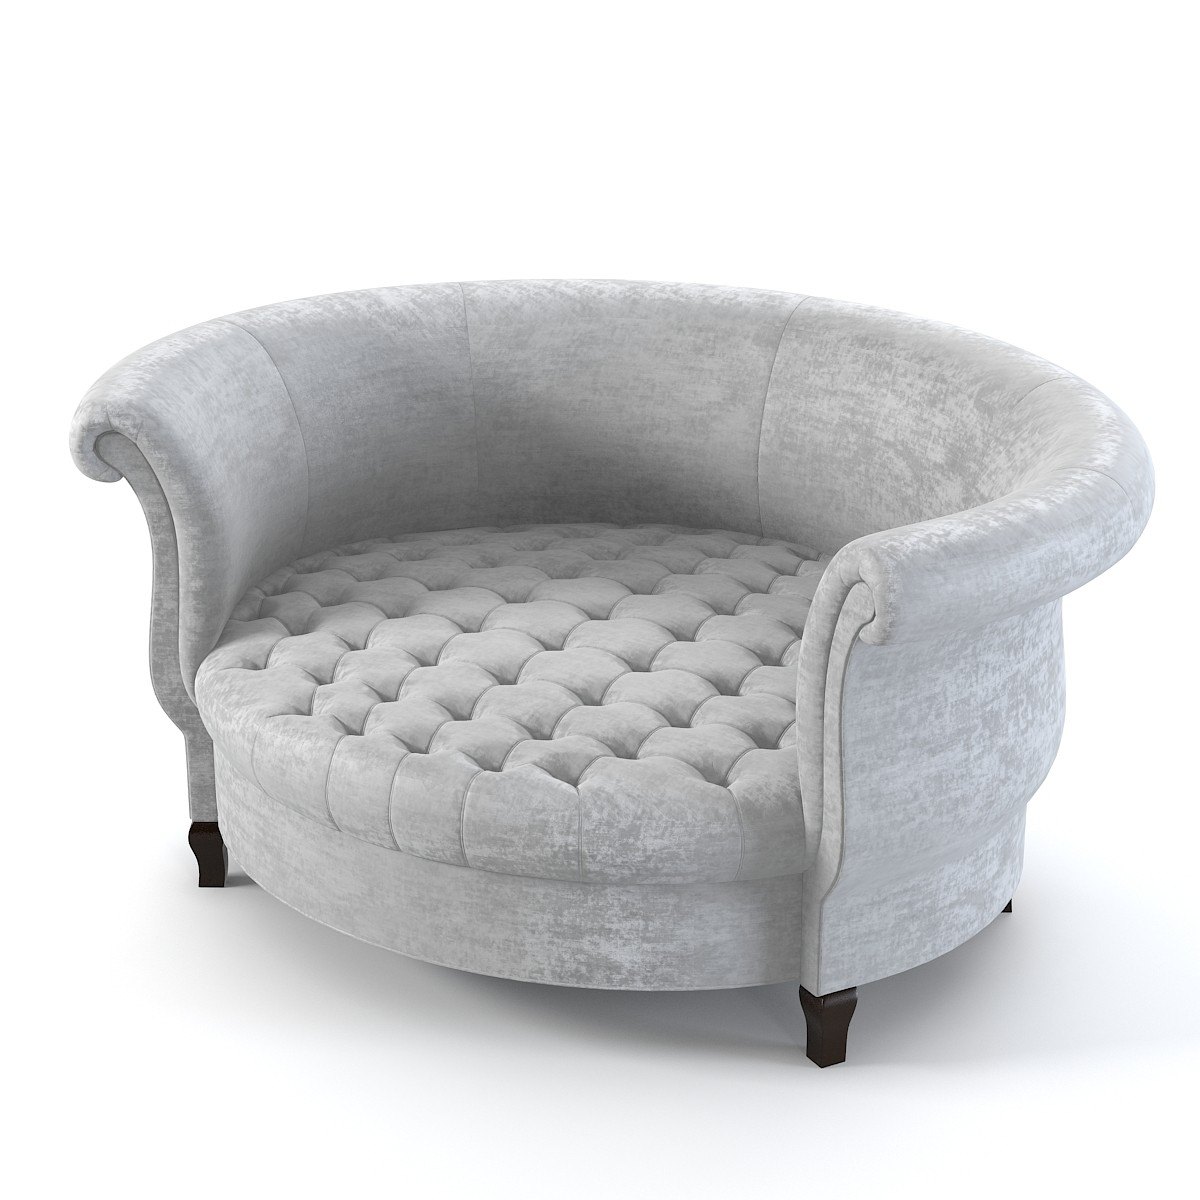 Harlow Cuddle Chair Leather Cuddle Sofa Hmmi With Regard To Snuggle Sofas (Image 4 of 15)